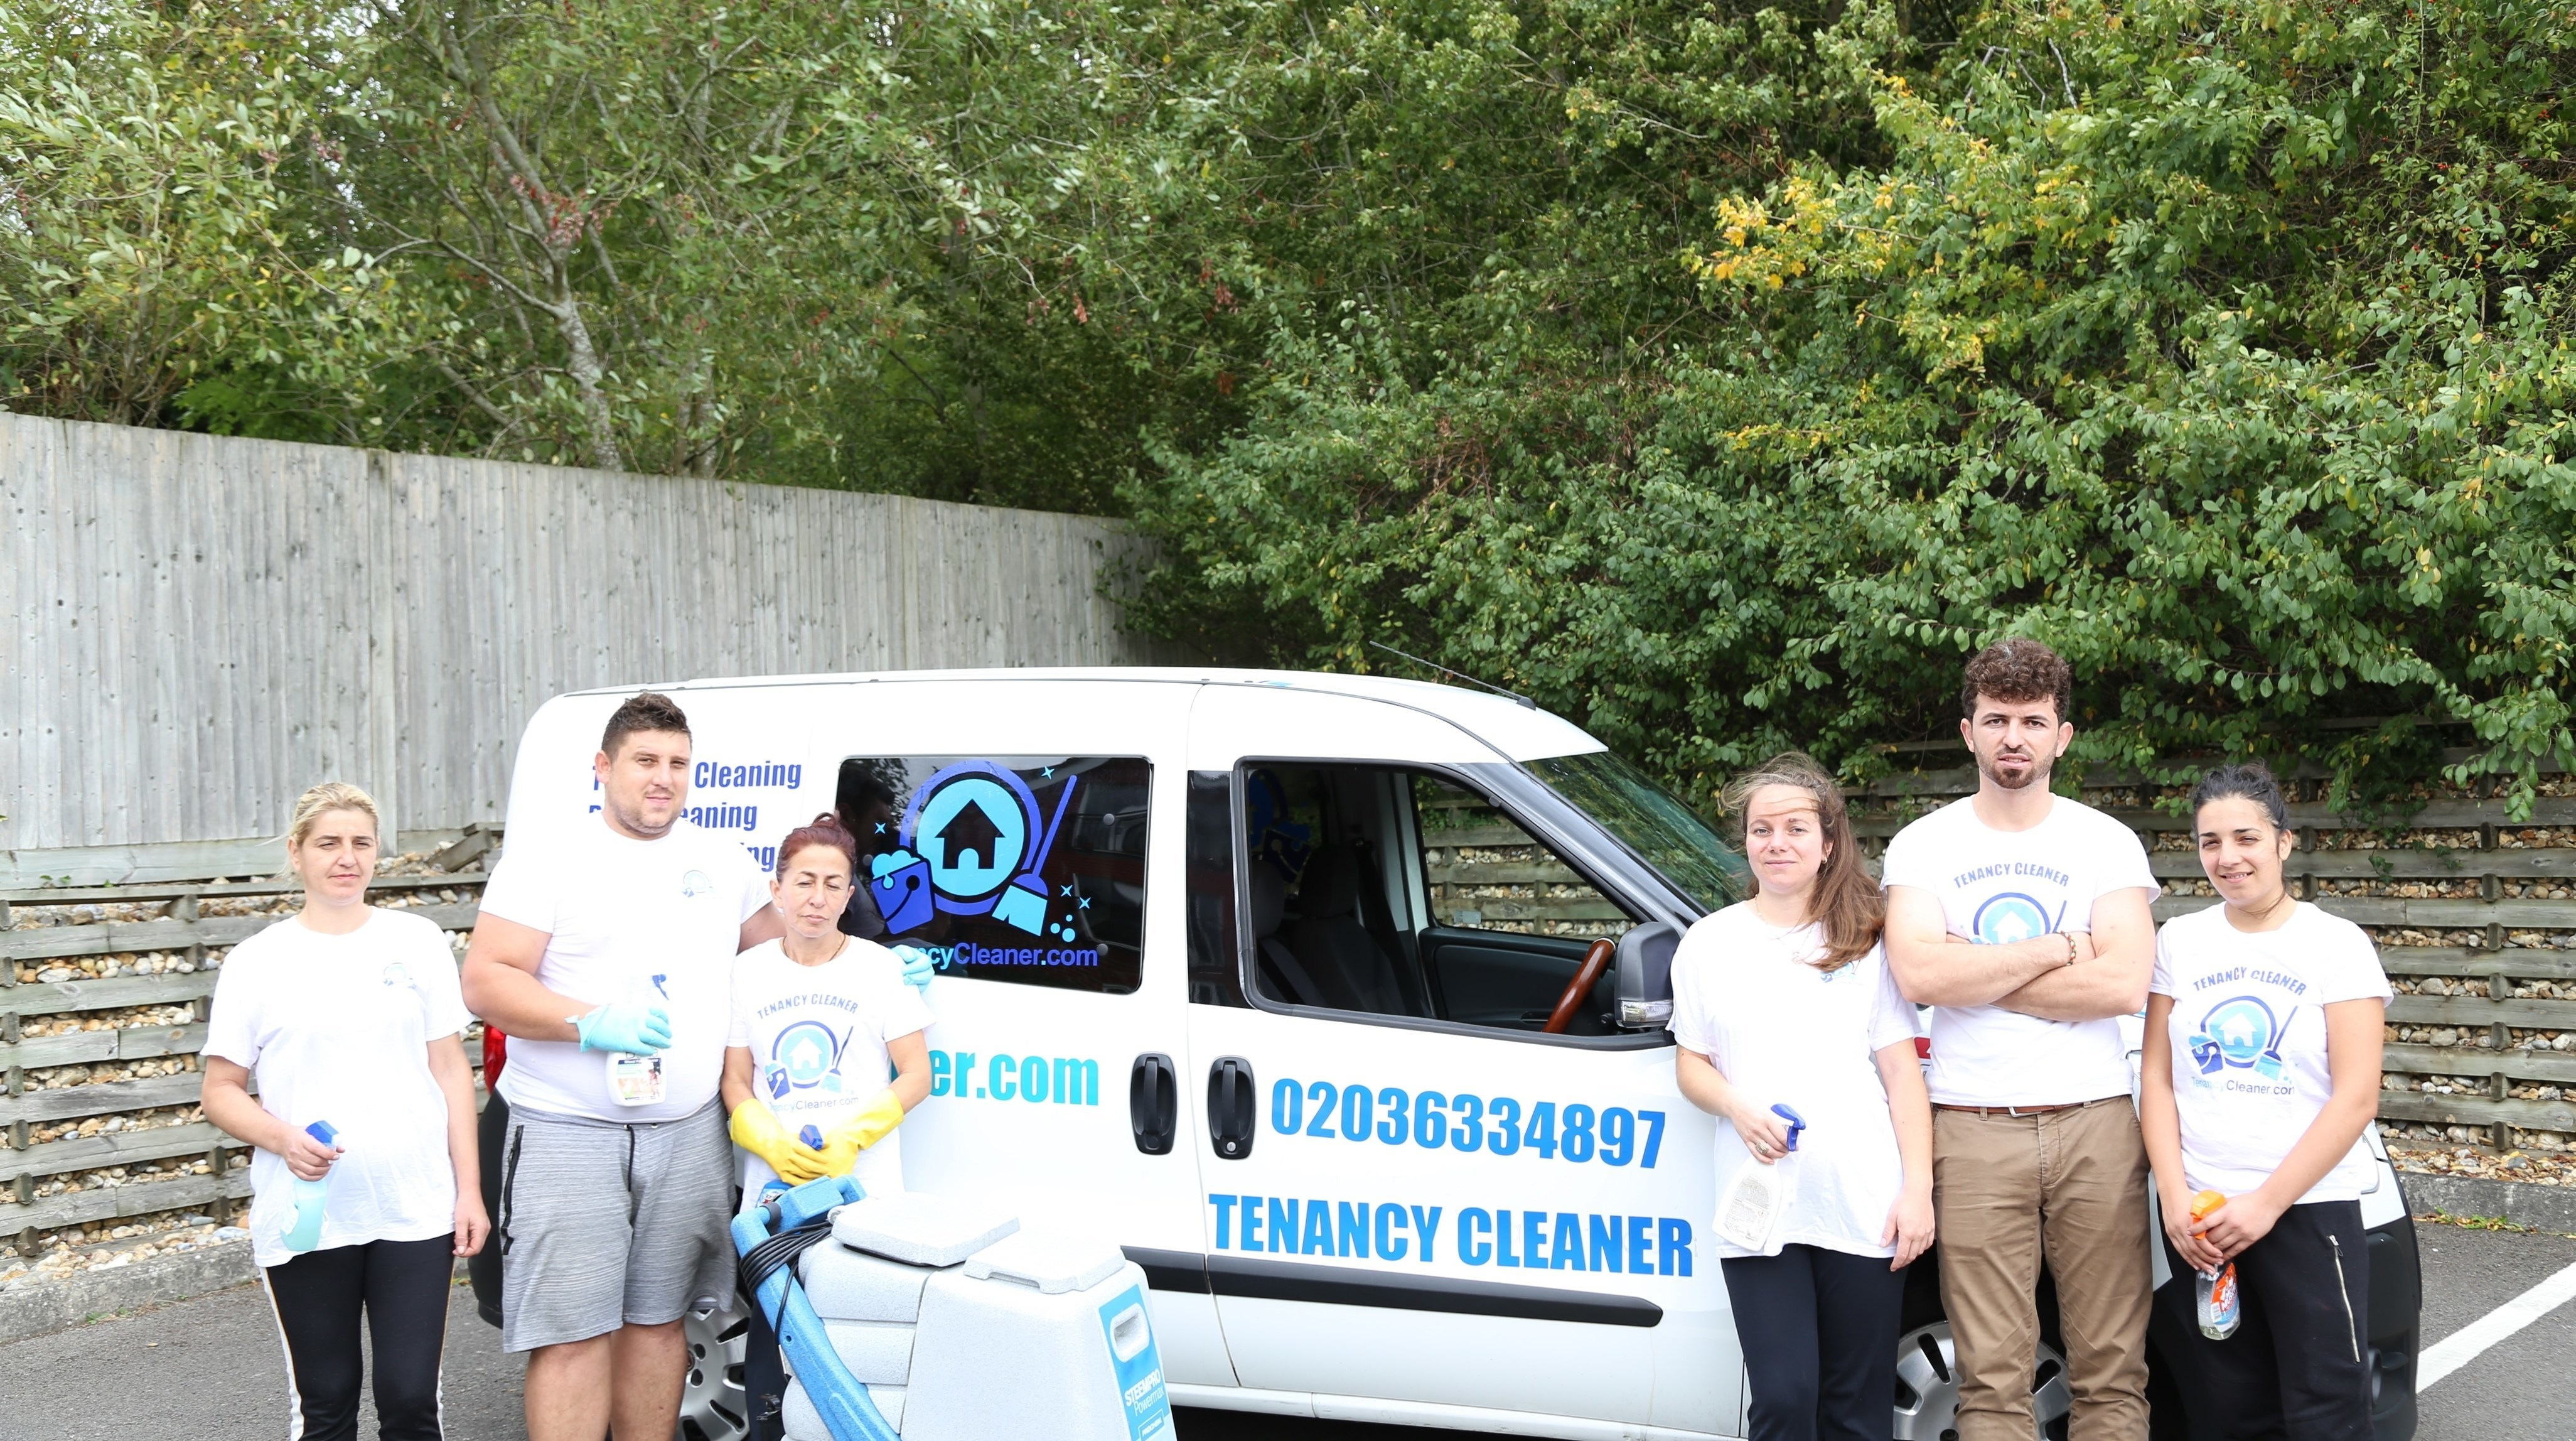 end of tenancy cleaning London service